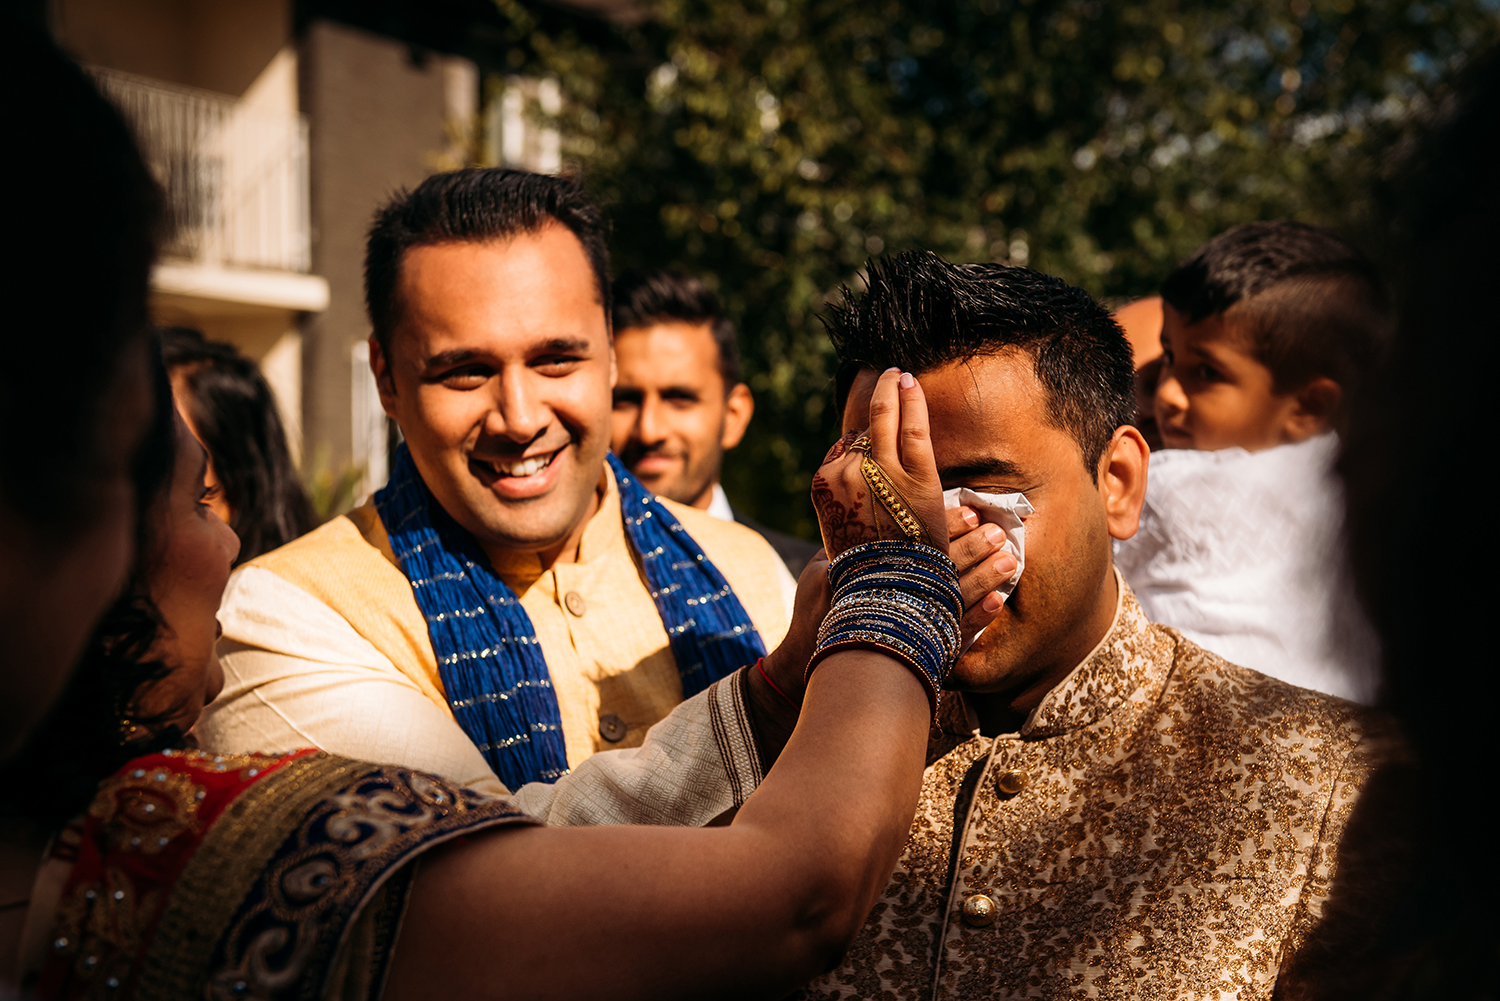 Fun shot during the Indian groom's entrance